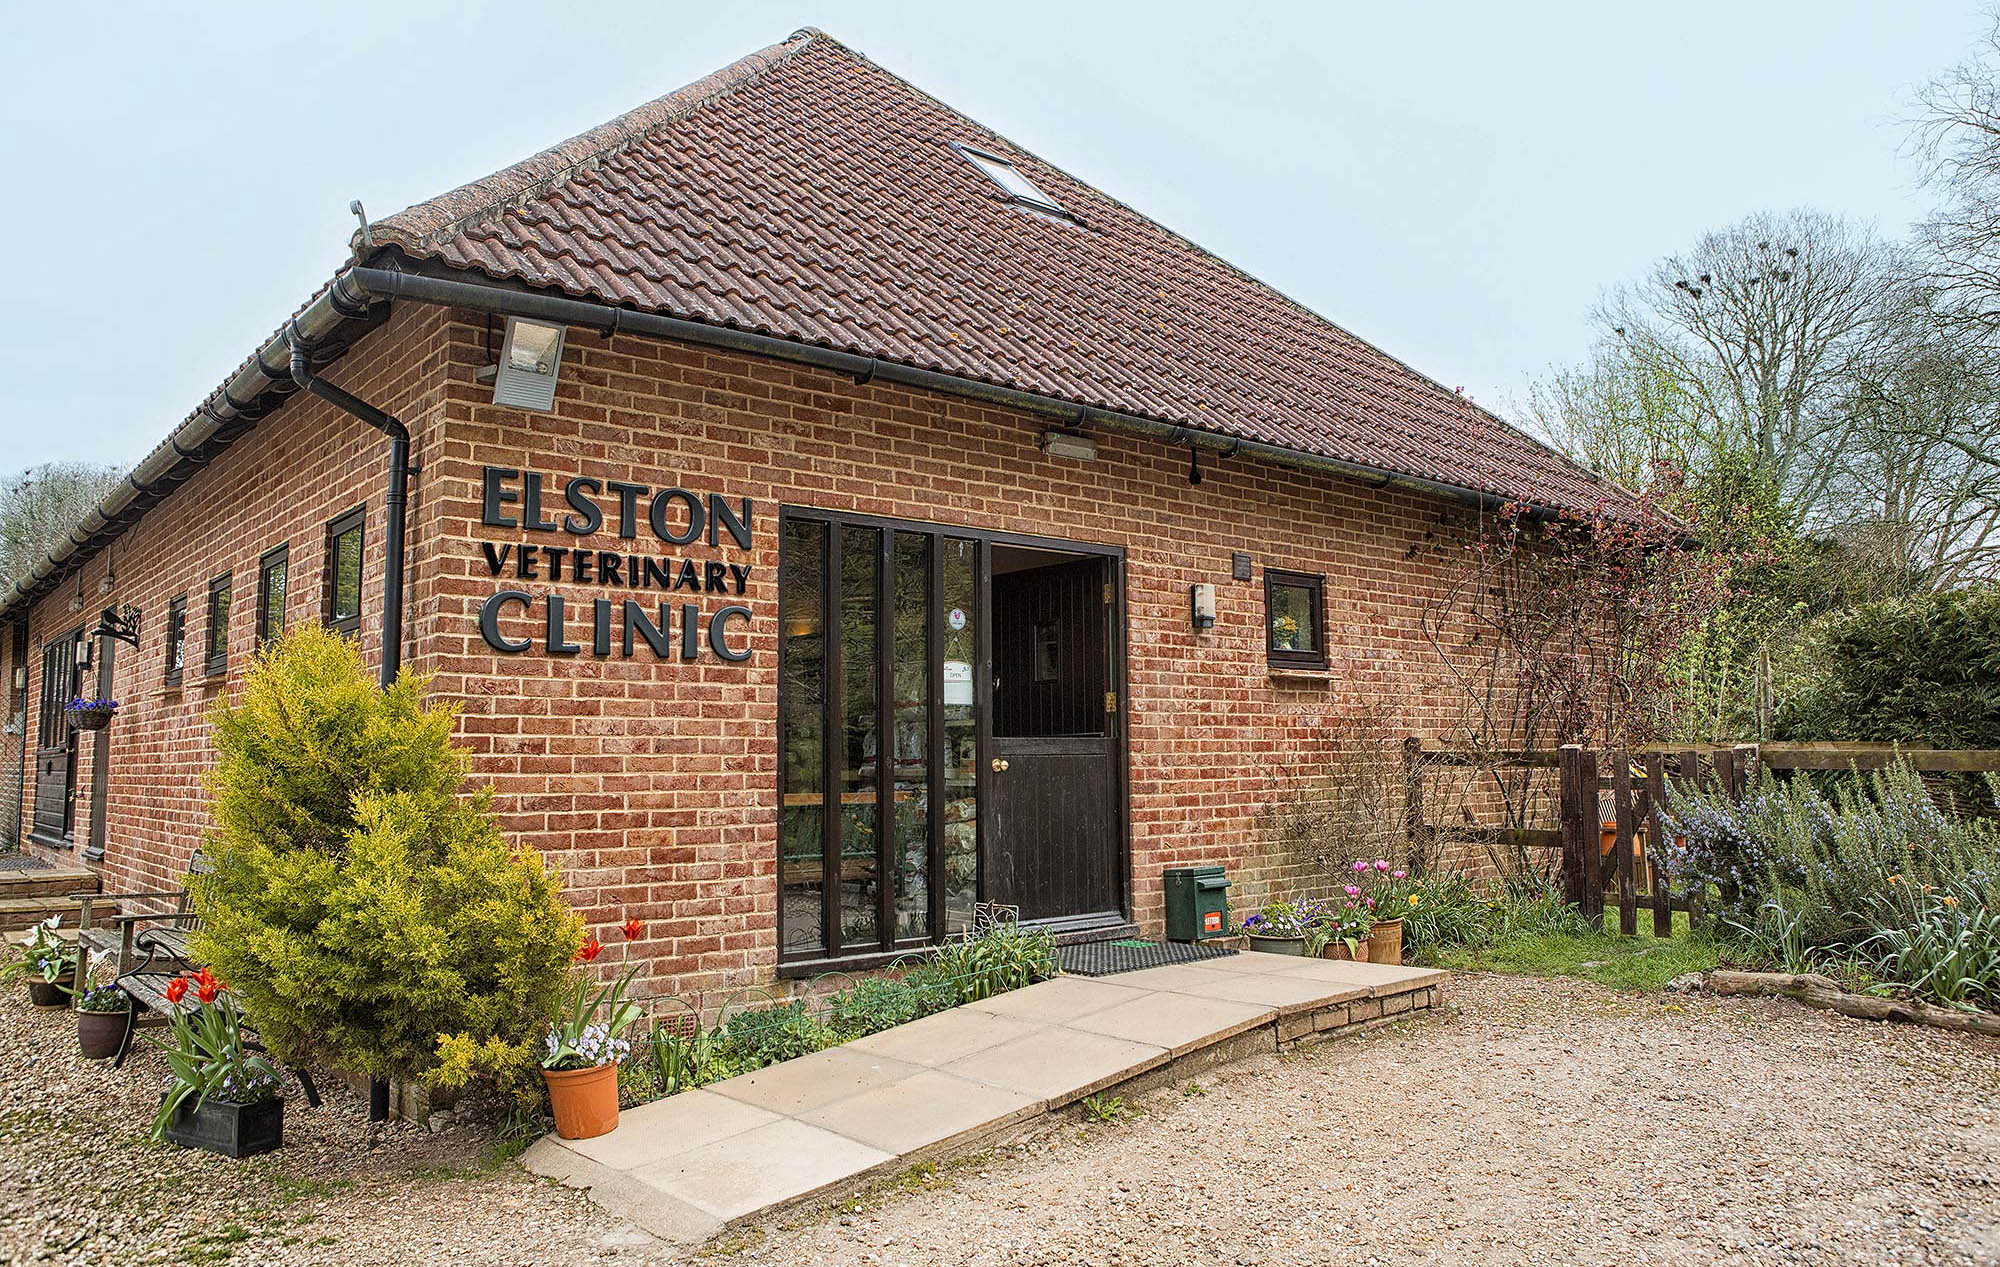 Elston Veterinary Clinic - Shrewton, Wiltshire